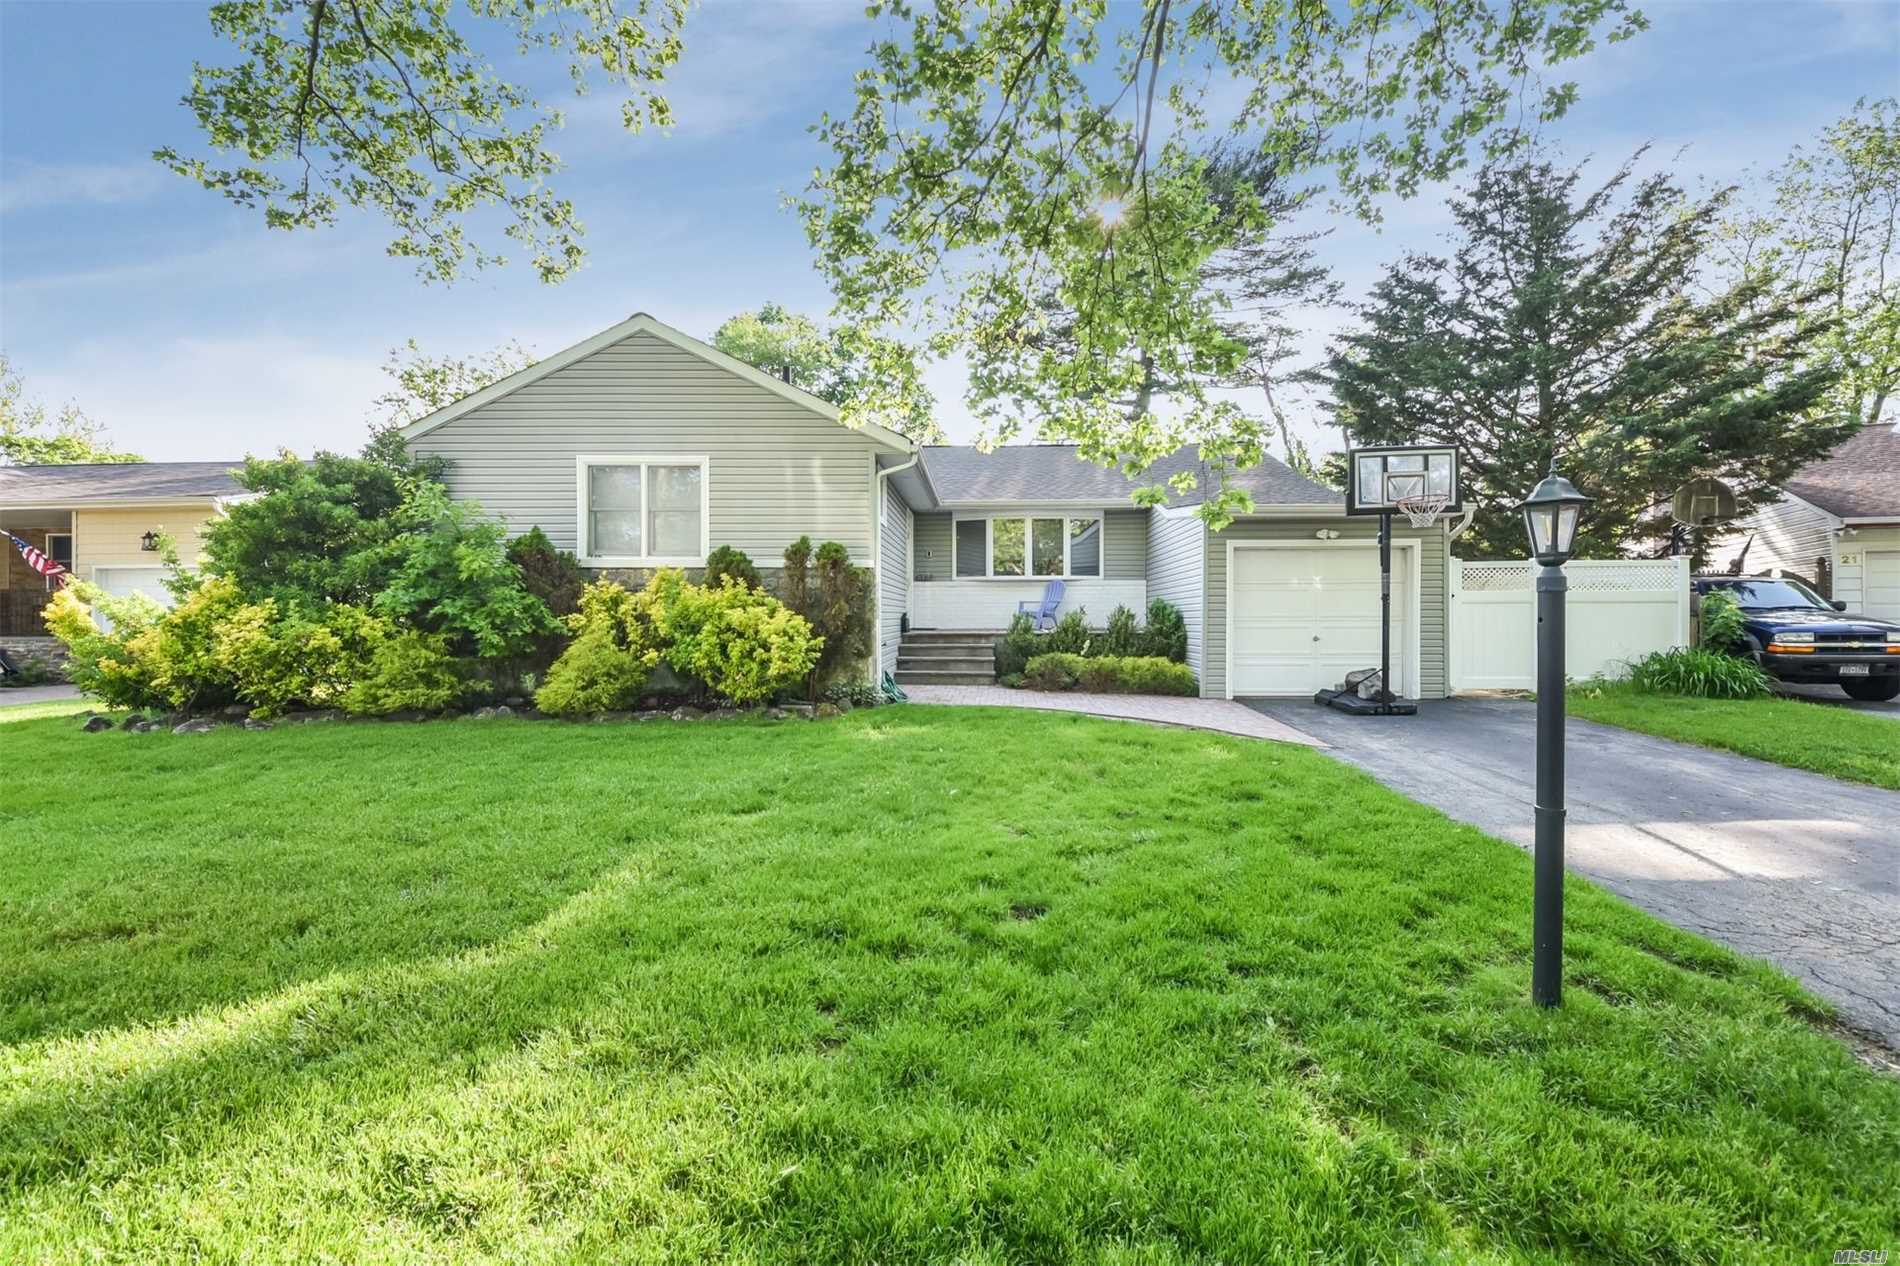 Location, Location!Best Value In Sd #14. 3 Bedrooms, Master Bath, Eat-In Kitchen With Granite Countertops And Stainless Steel Appliances. , Main Floor Den Full Finished Basement With Separate Enterance, Quiet Tree Lined St. Oakwood Floors Throughout.